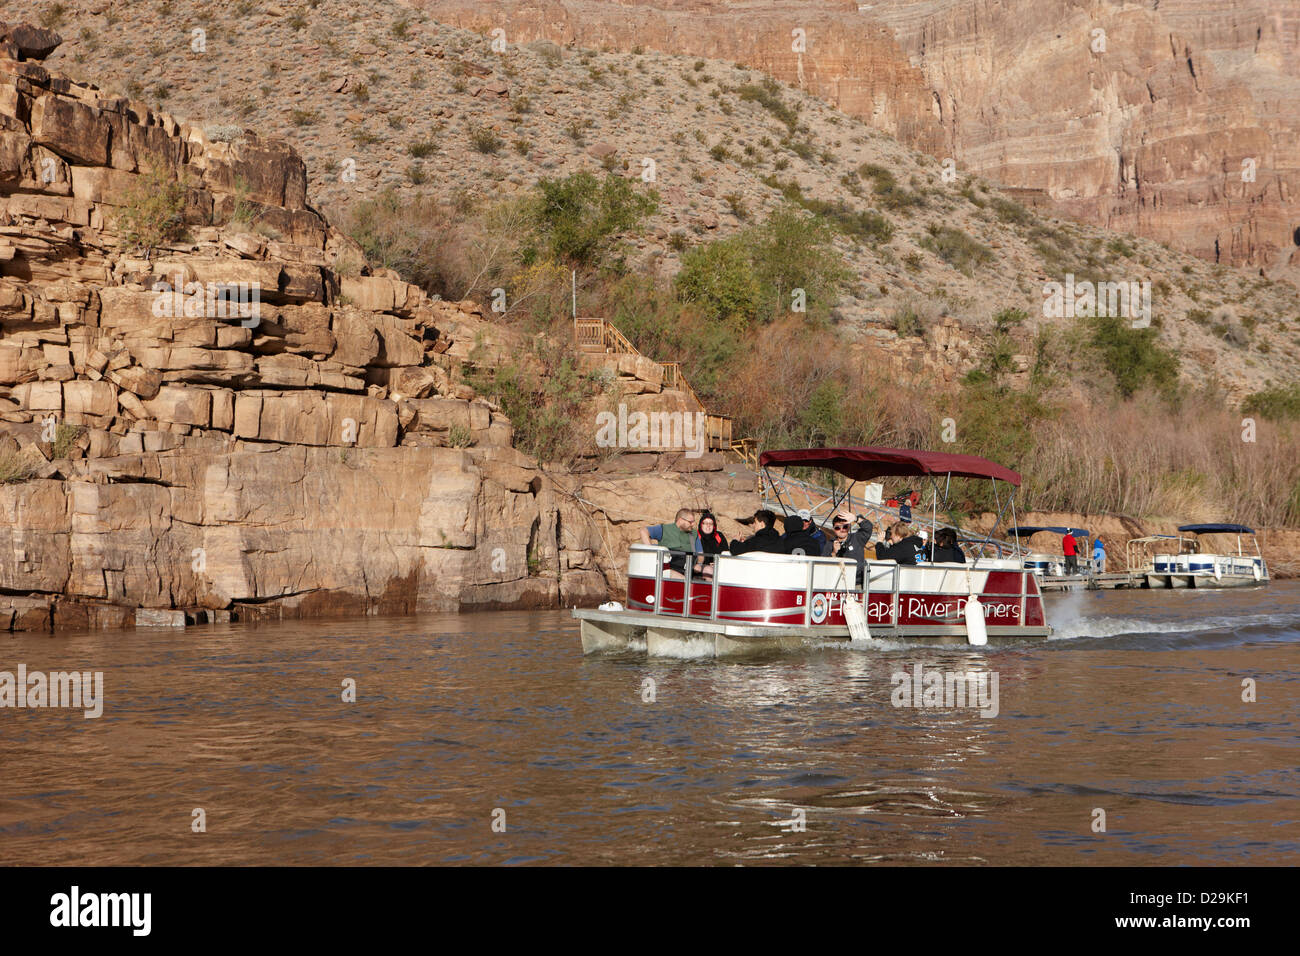 hualapai nation river tours on colorado river bottom of the grand canyon Arizona USA - Stock Image